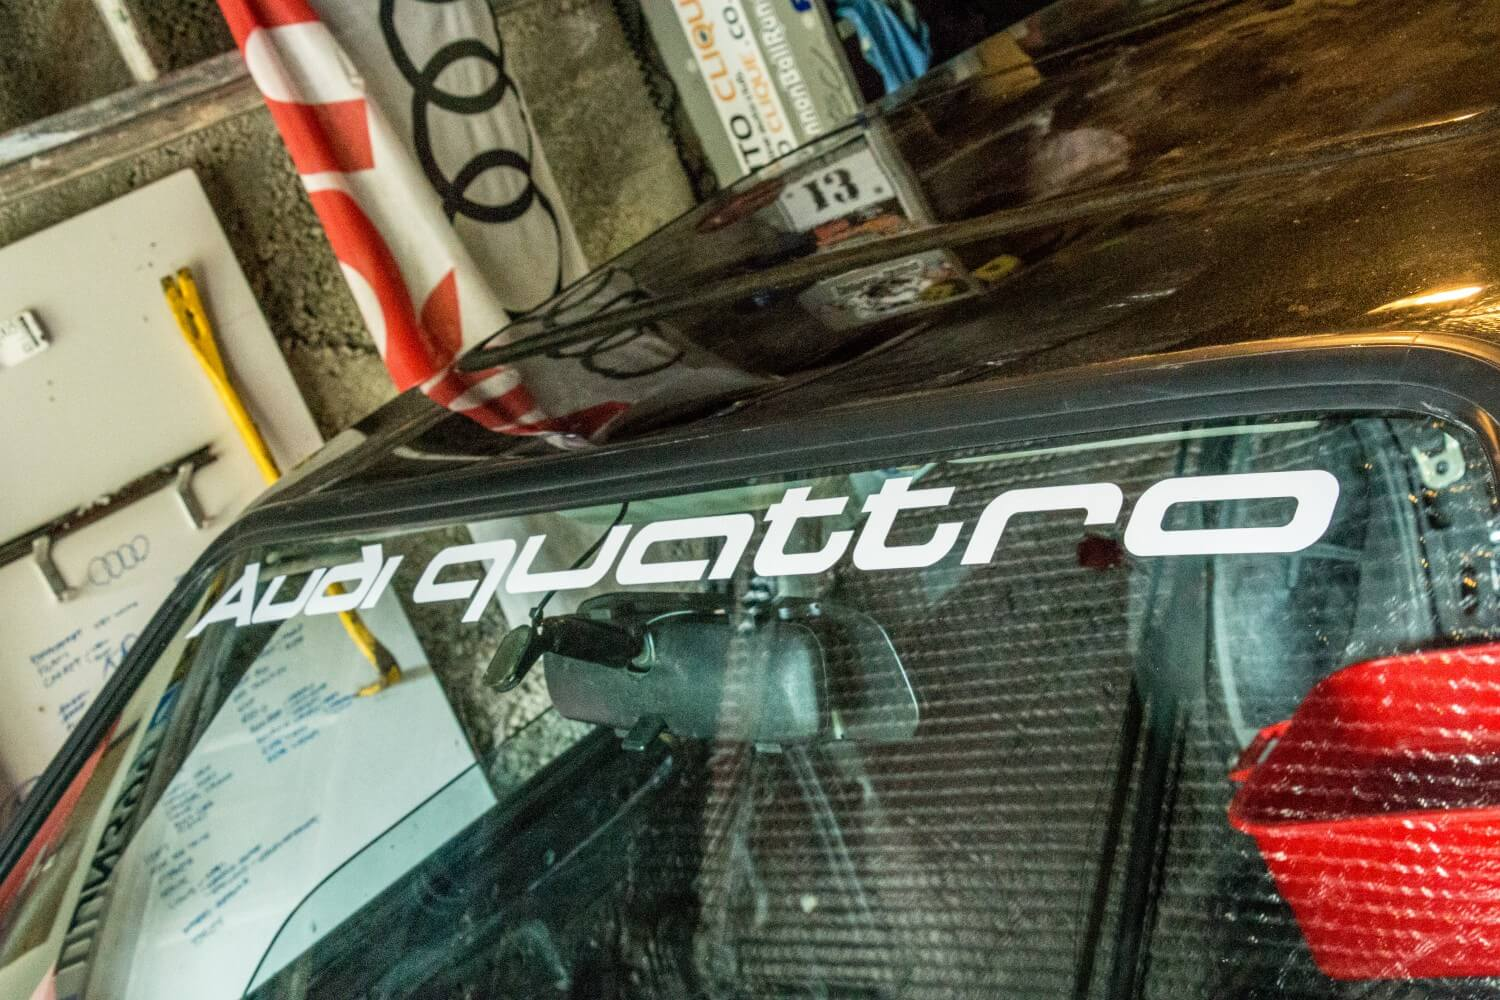 Robs-Audi-quattro-project-rusty4840